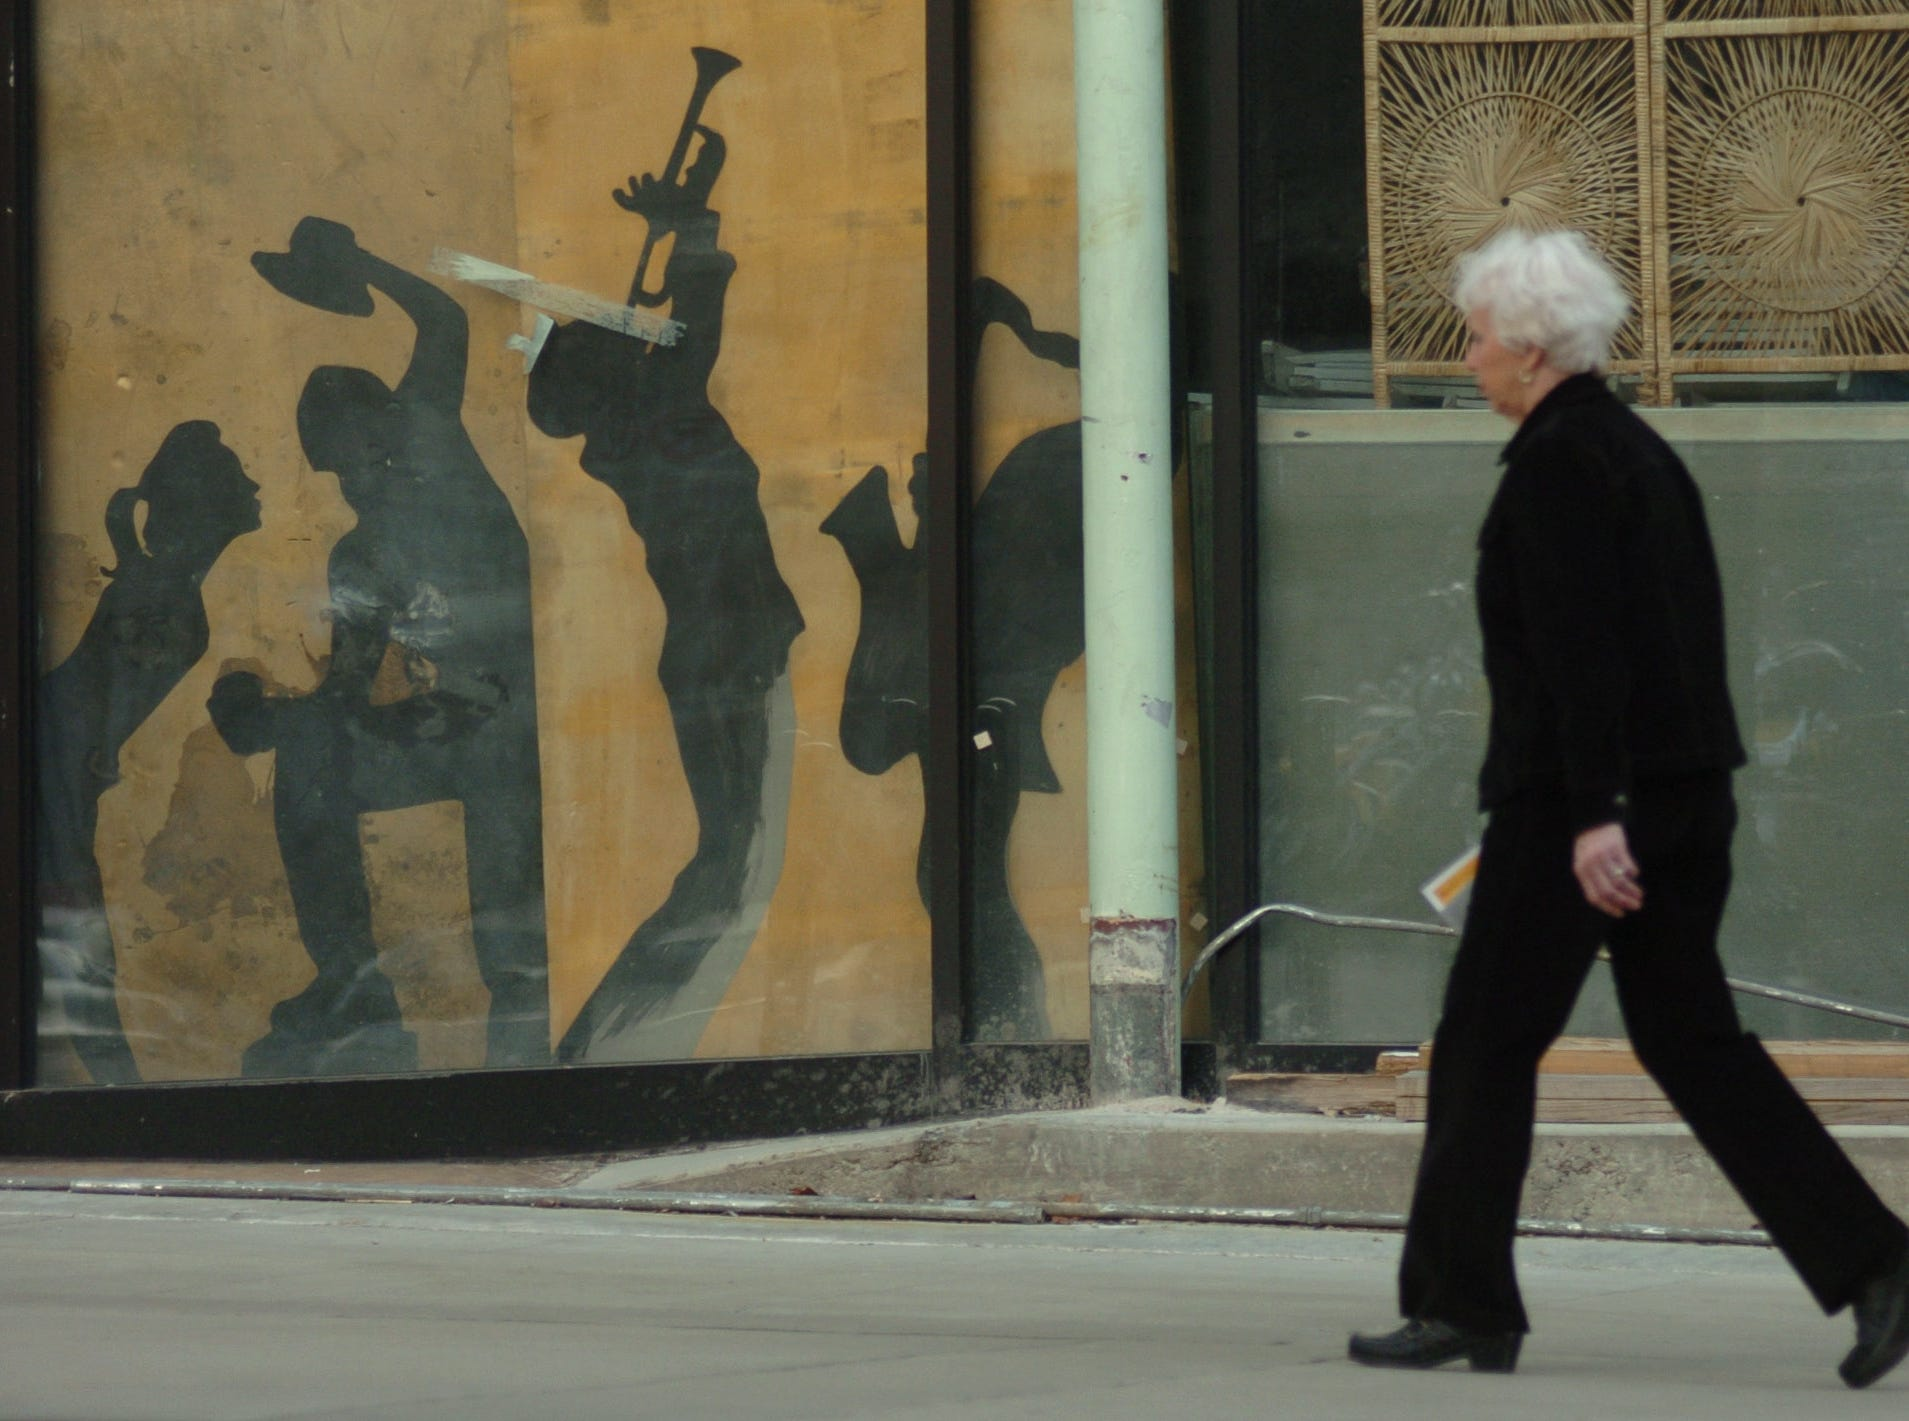 Marilyn Dew walks past some painted silhouettes of figures dancing and playing music, reminiscent of a Mardi Gras scene, on Market Square Tuesday afternoon, which is officially Mardi Gras day, in downtown Knoxville, Tenn. Dew was visiting her daughter, Susie Dew, who owns World Grotto on Market Square. The figures were in the window of a building being rennovated. Jeff Adkins/NEWS SENTINEL ----02/28/2006.